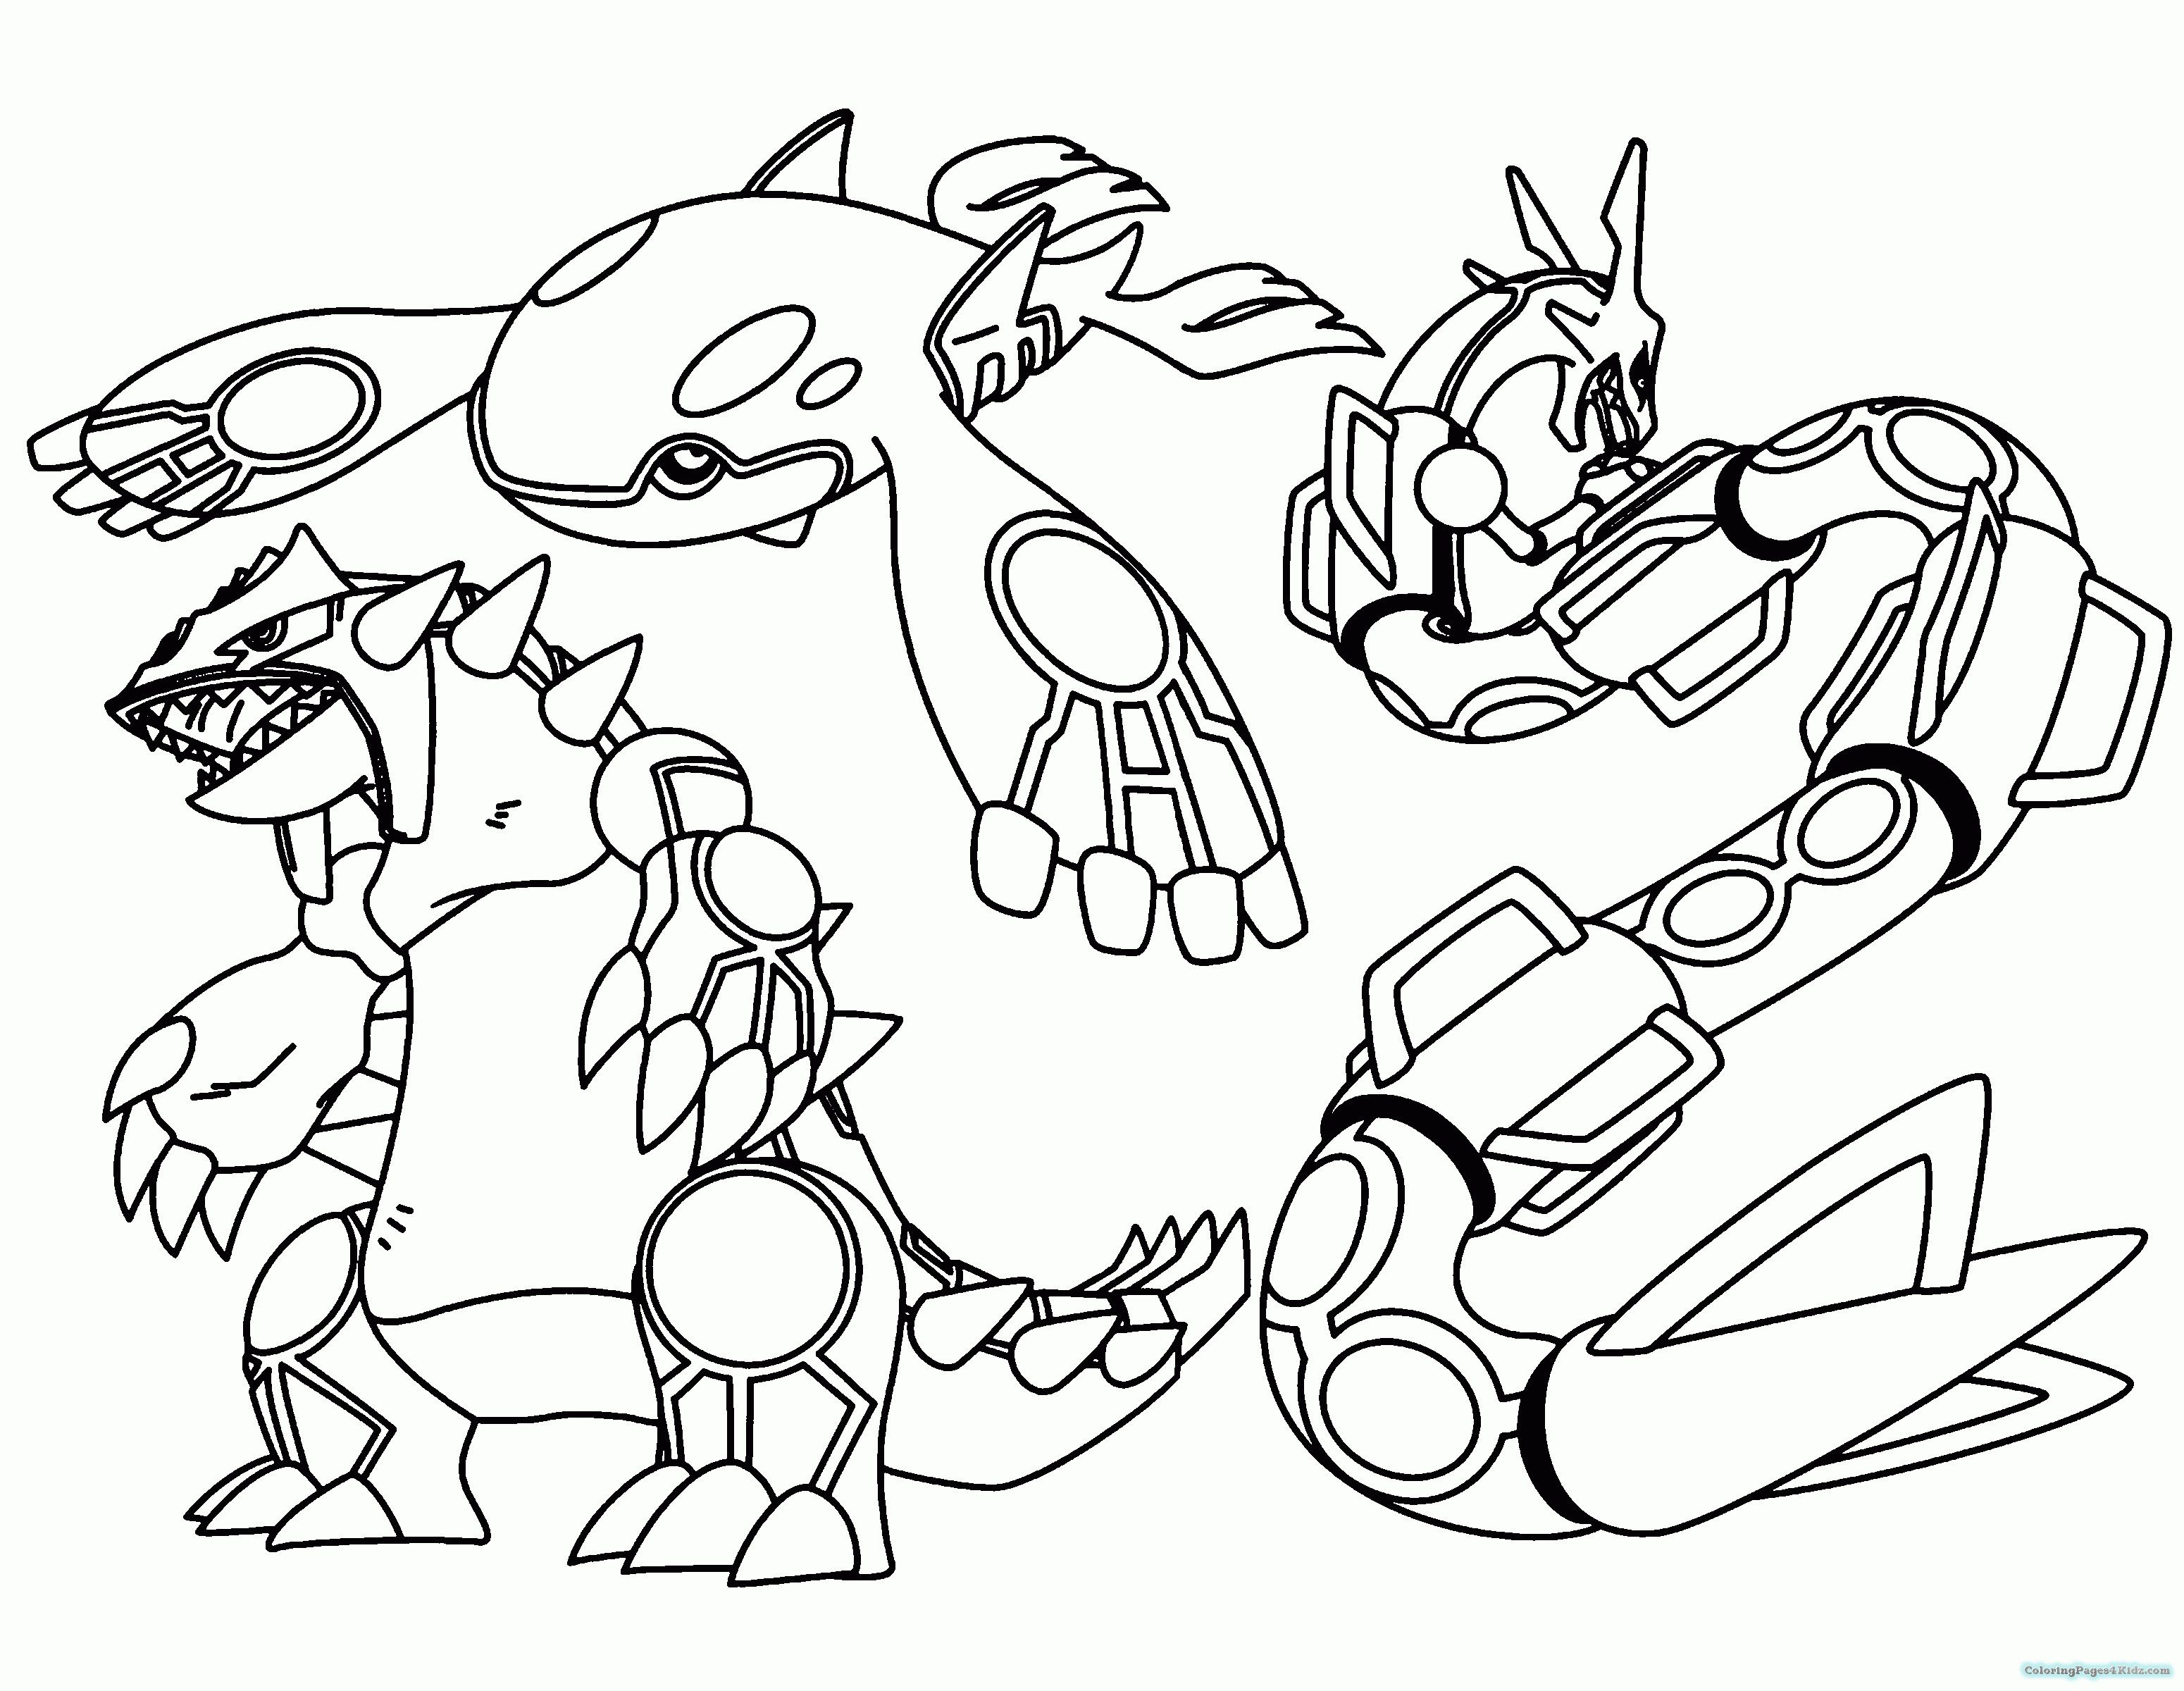 Legendary Pokemon Giratina Coloring Pages For Kids Inside